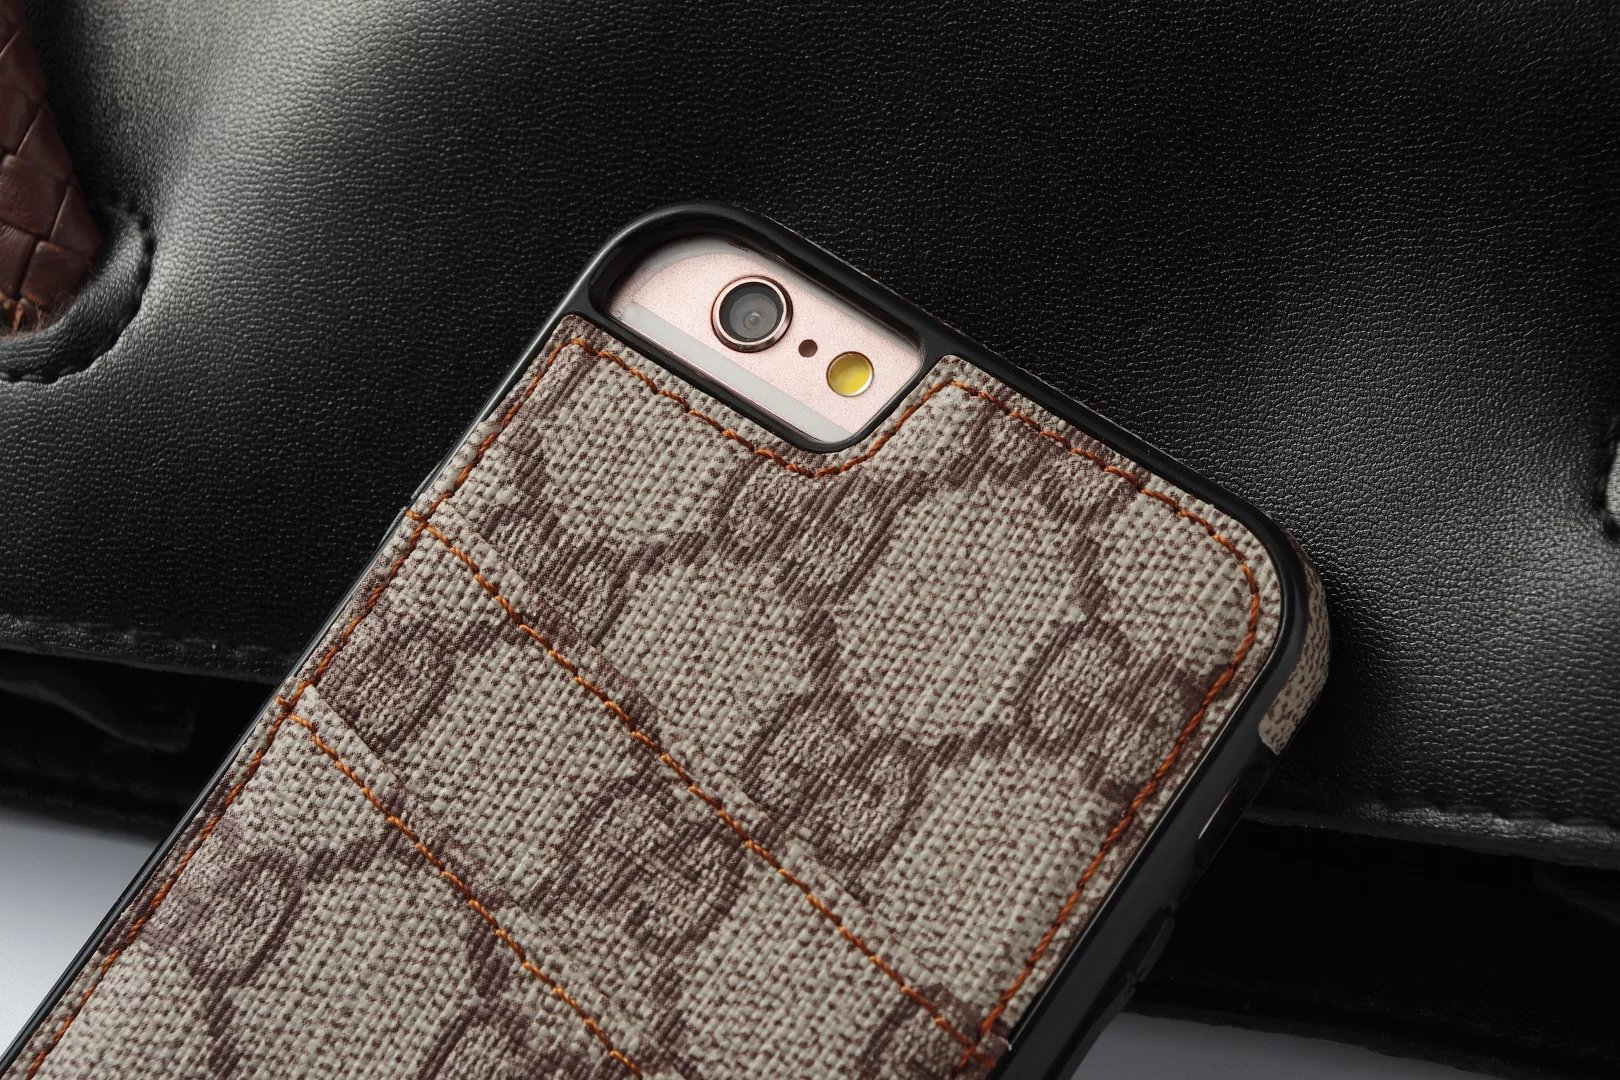 iphone 7 Plus best covers top rated iphone 7 Plus case fashion iphone7 Plus case iphone 7 Plus case with holes where to buy designer best case for an iphone 7 Plus iphone 7 Plus iphone case designer usa design handbags